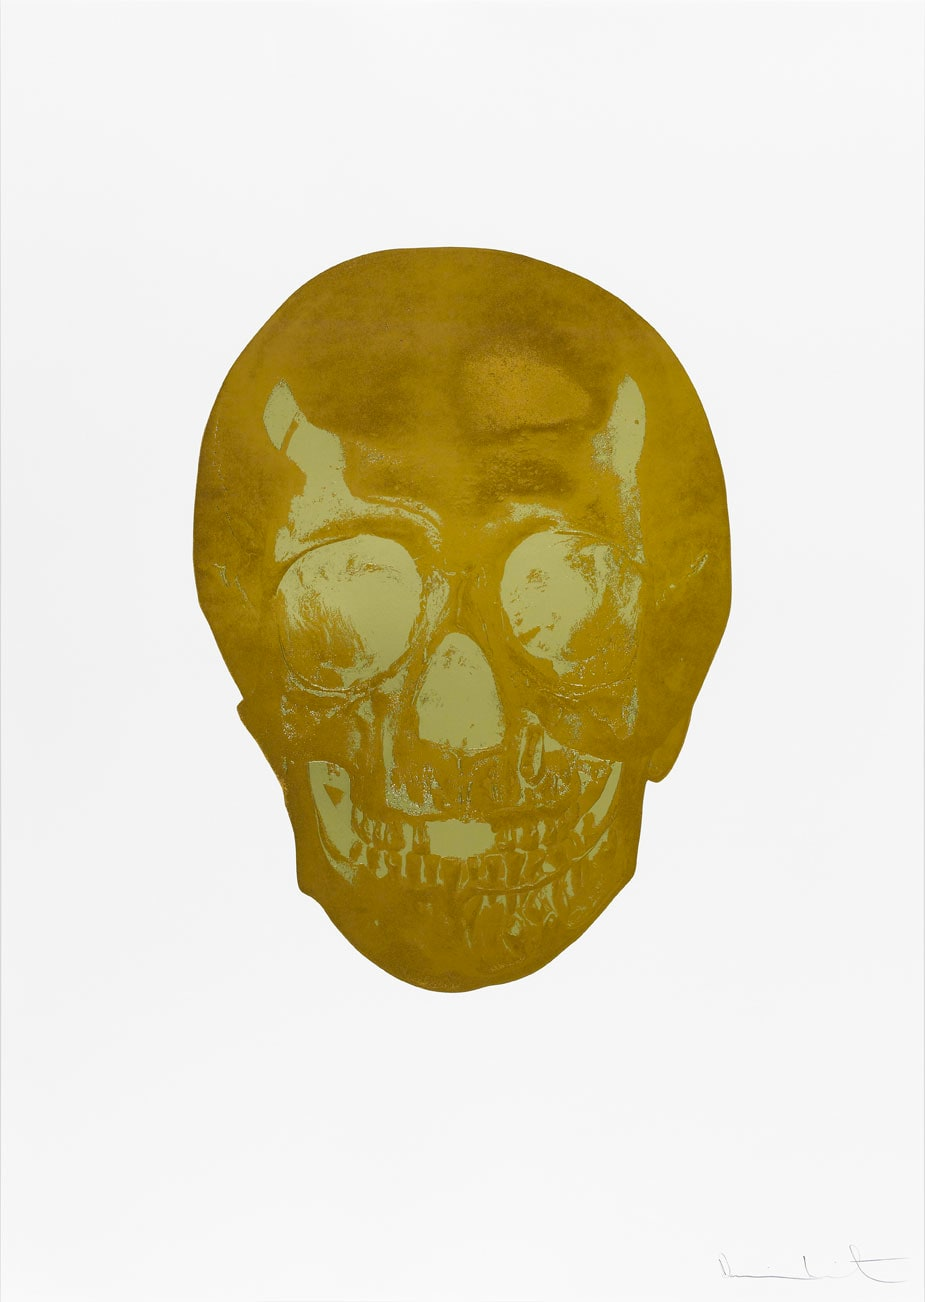 Damien Hirst Death Or Glory European Gold/Cool Gold Glorious Skull, 2011 2 colour foil block on 300gsm Arches 88 archival paper. Signed and numbered. Published by Paul Stolper and Other Criteria. White aluminium powder coated frame. 72 x 51 cm; Framed 76.8 x 55.8 cm OC8375 Edition of 2